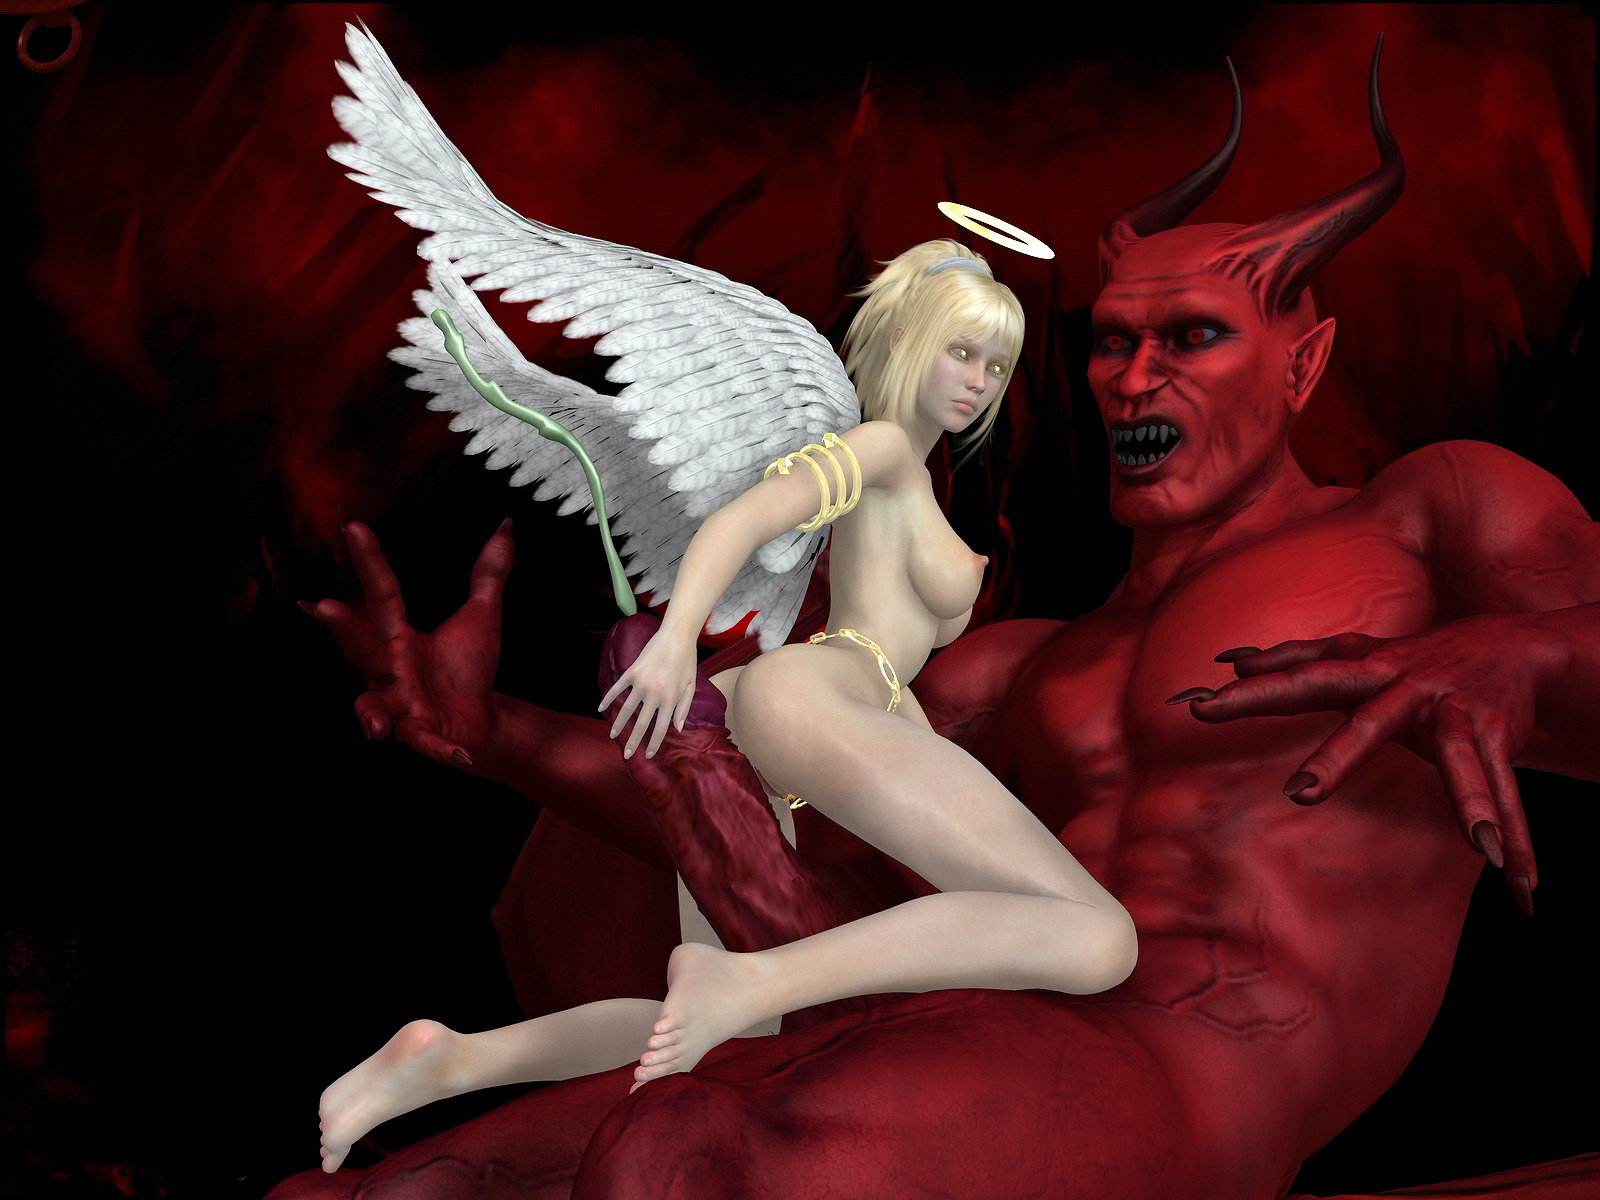 Angel demon sex naked movies